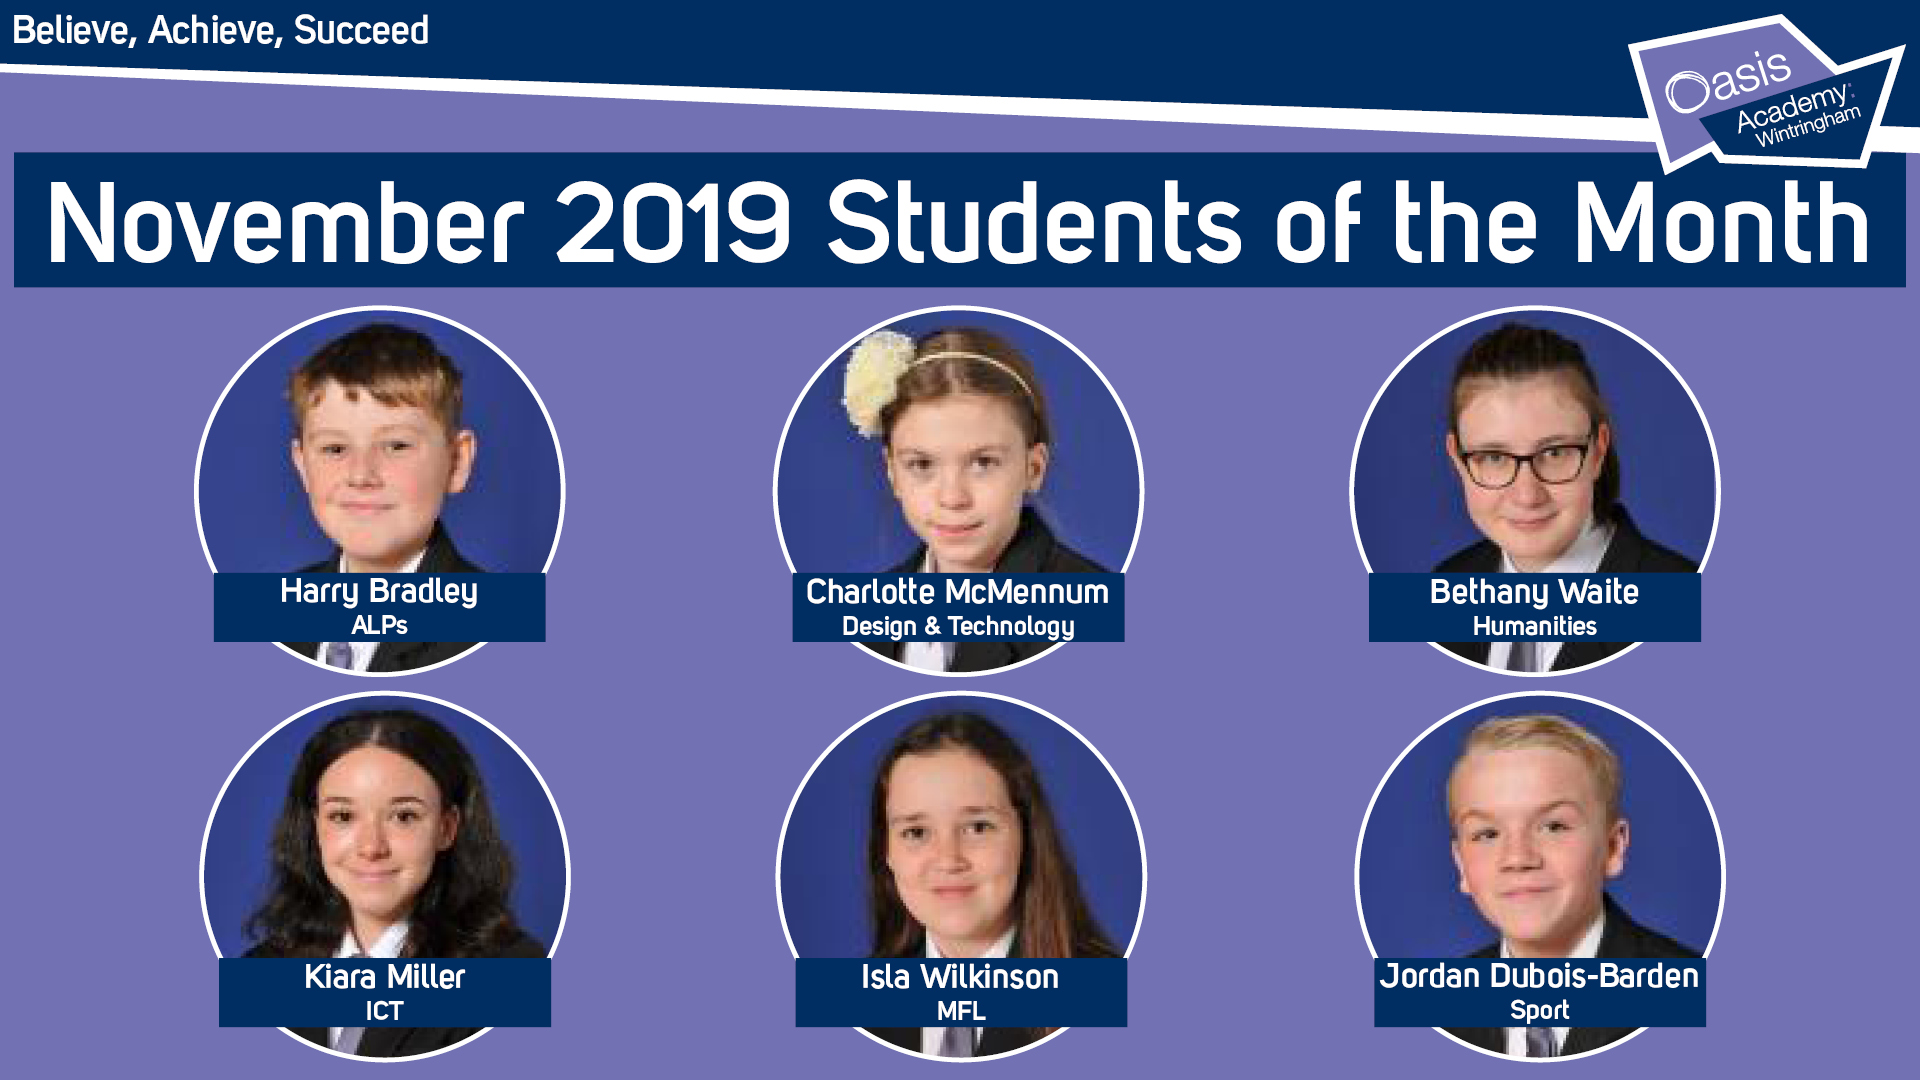 November 2019 Students of the Month